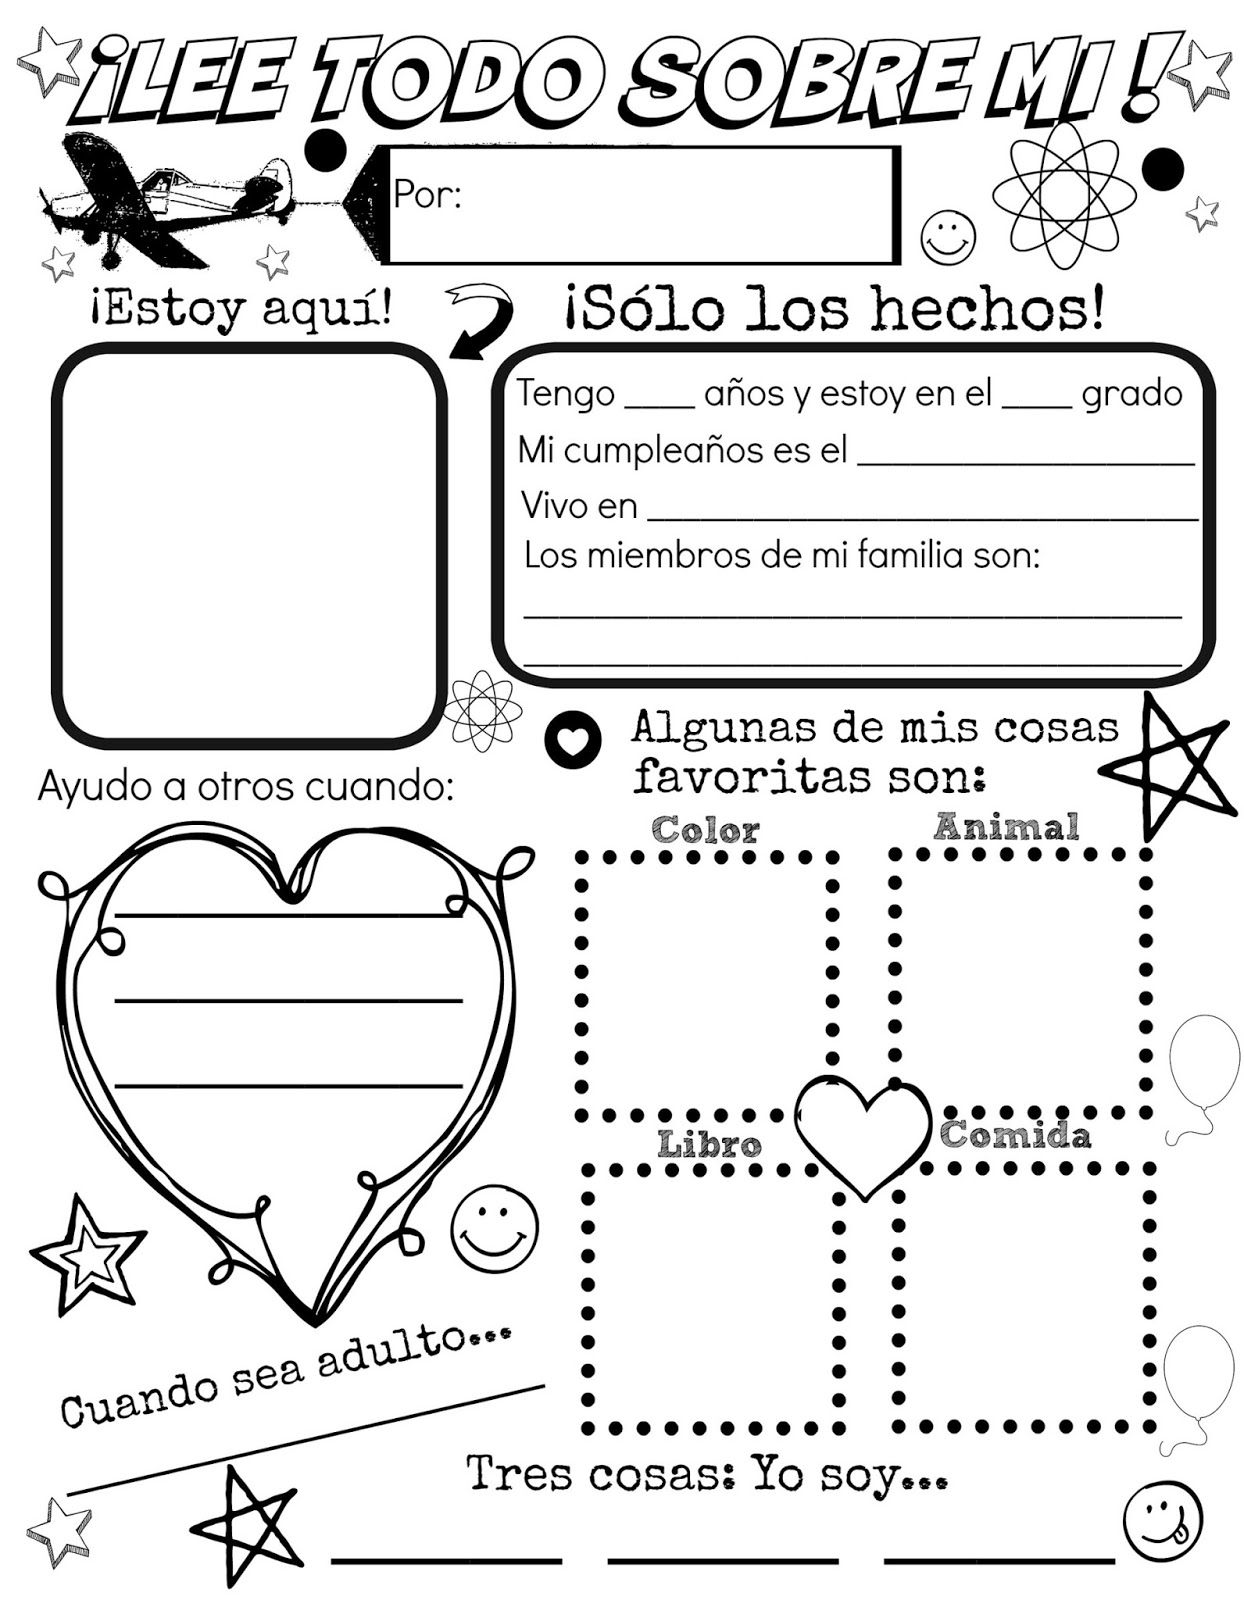 graphic regarding All About Me Free Printable Worksheets known as All Relating to Me Totally free Spanish Printable Finding out the